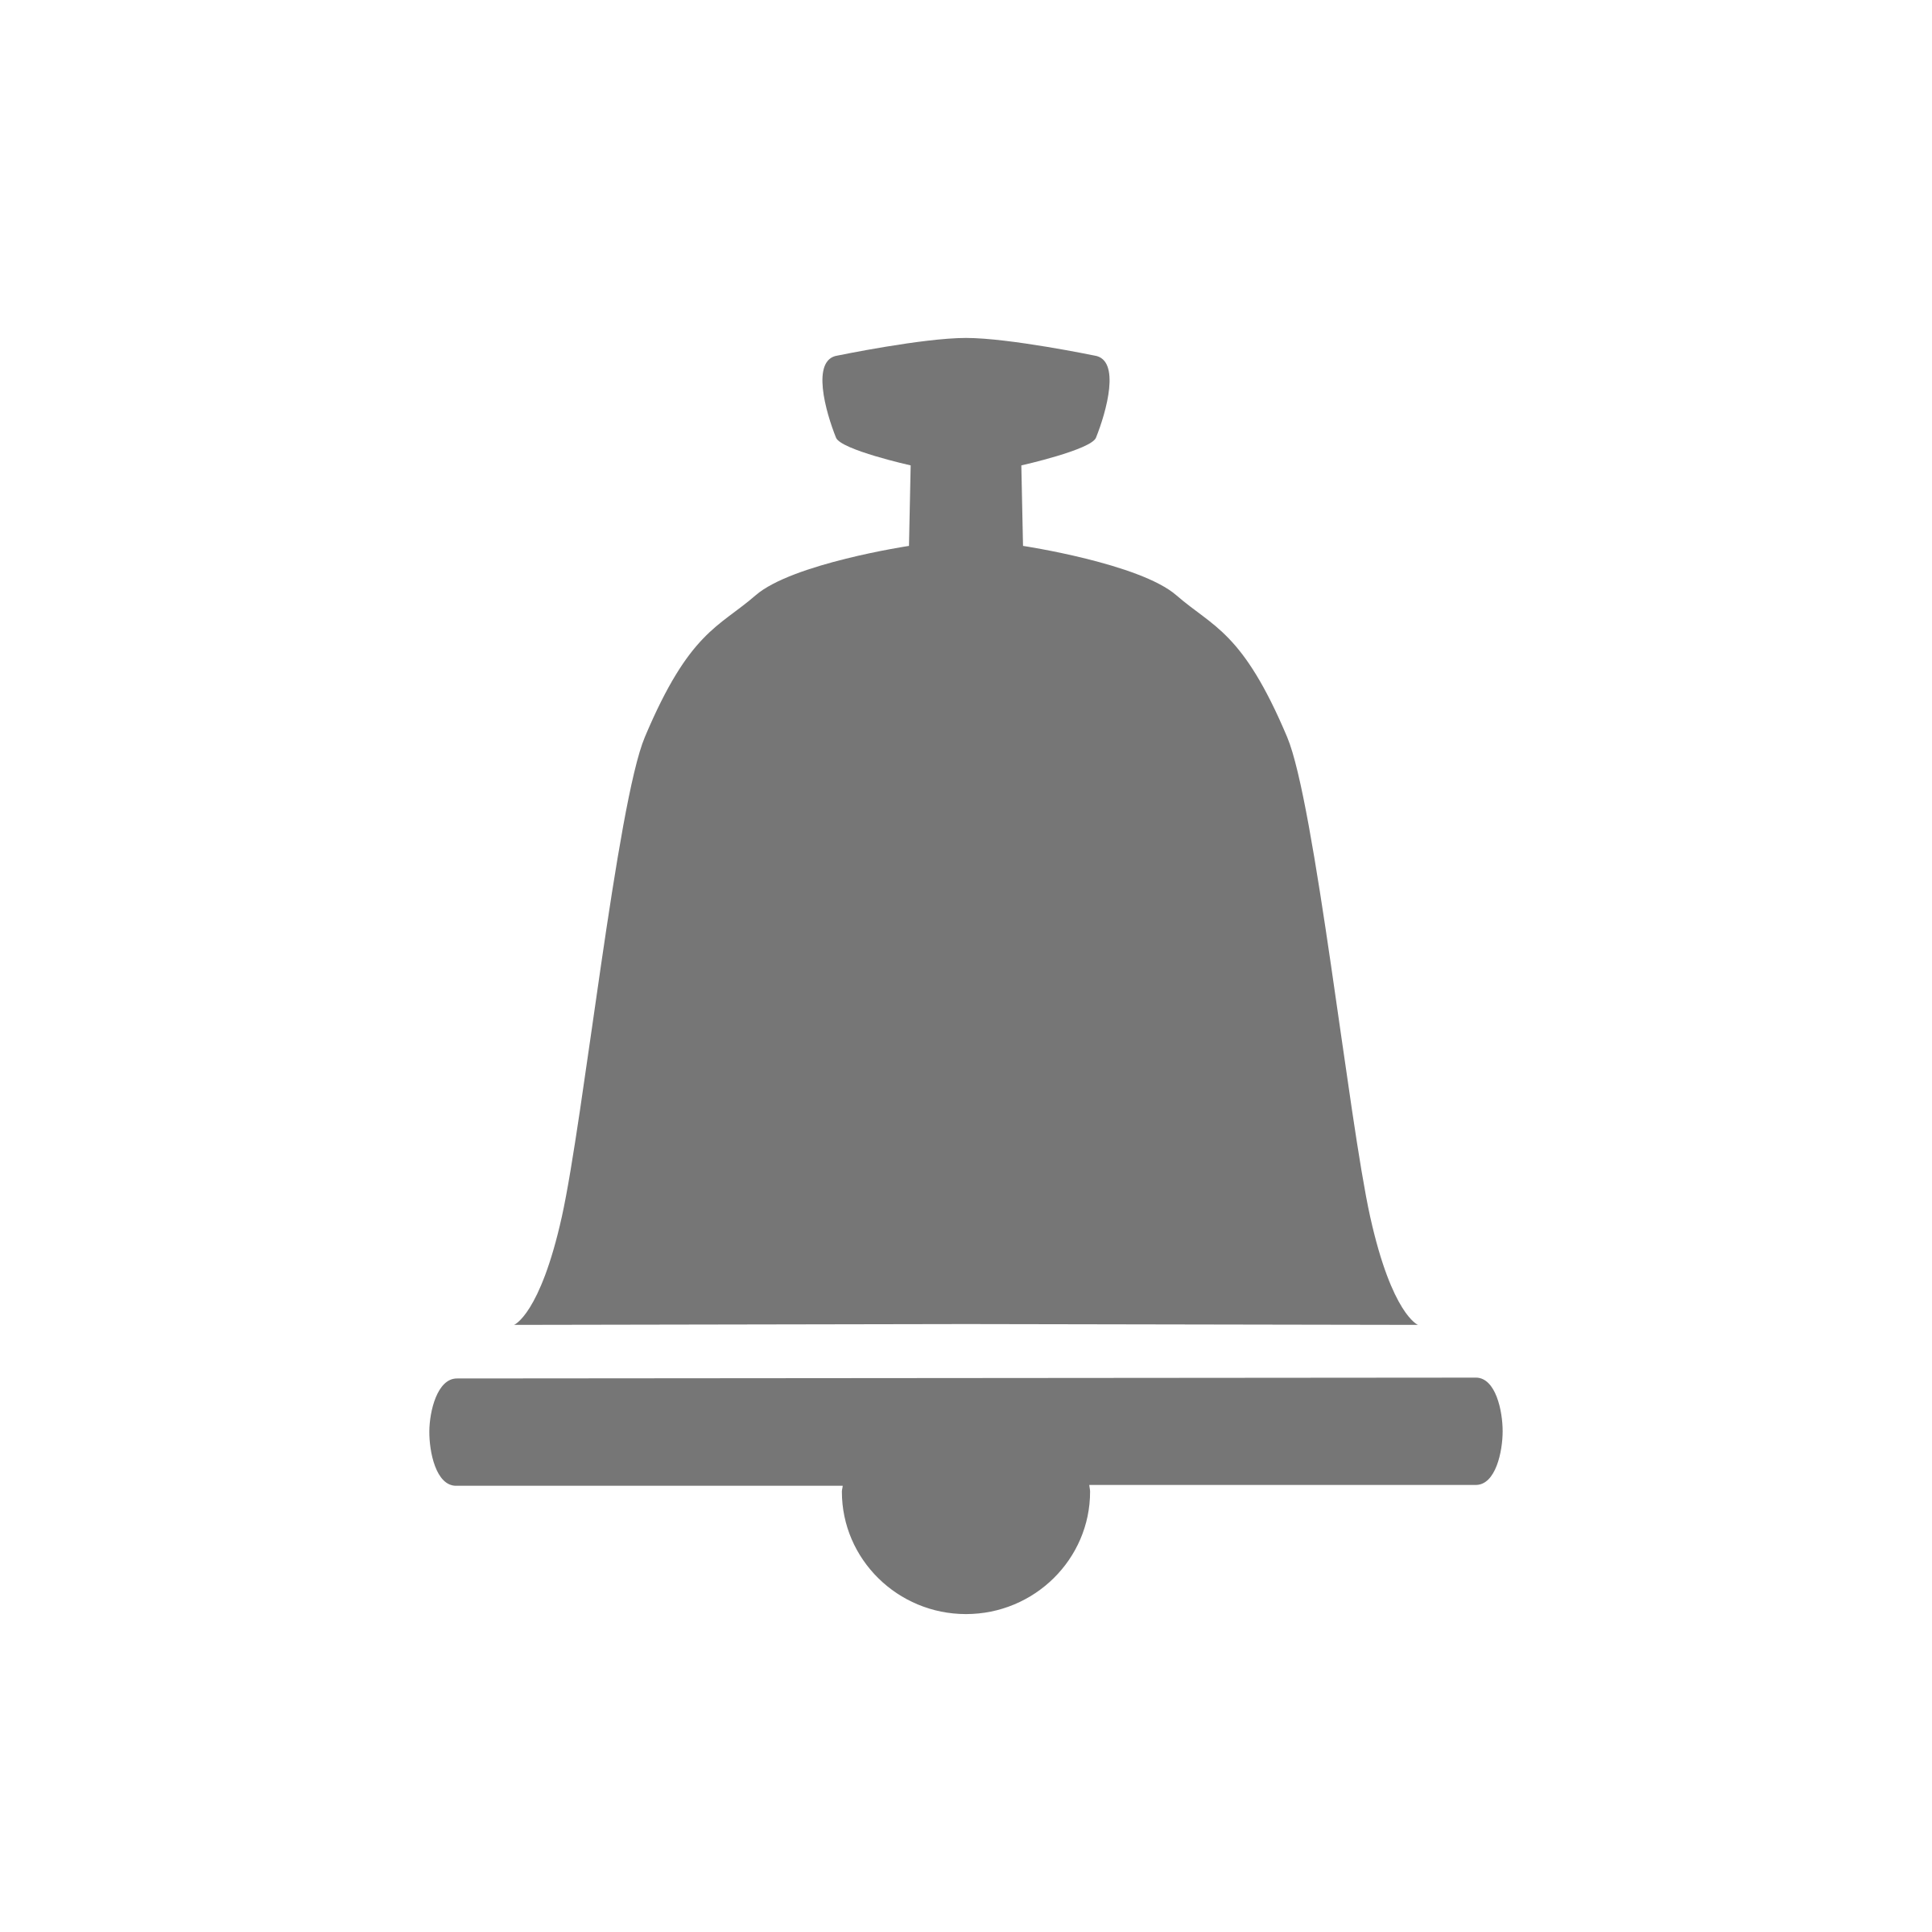 Gray bell png. Drawing icon free icons